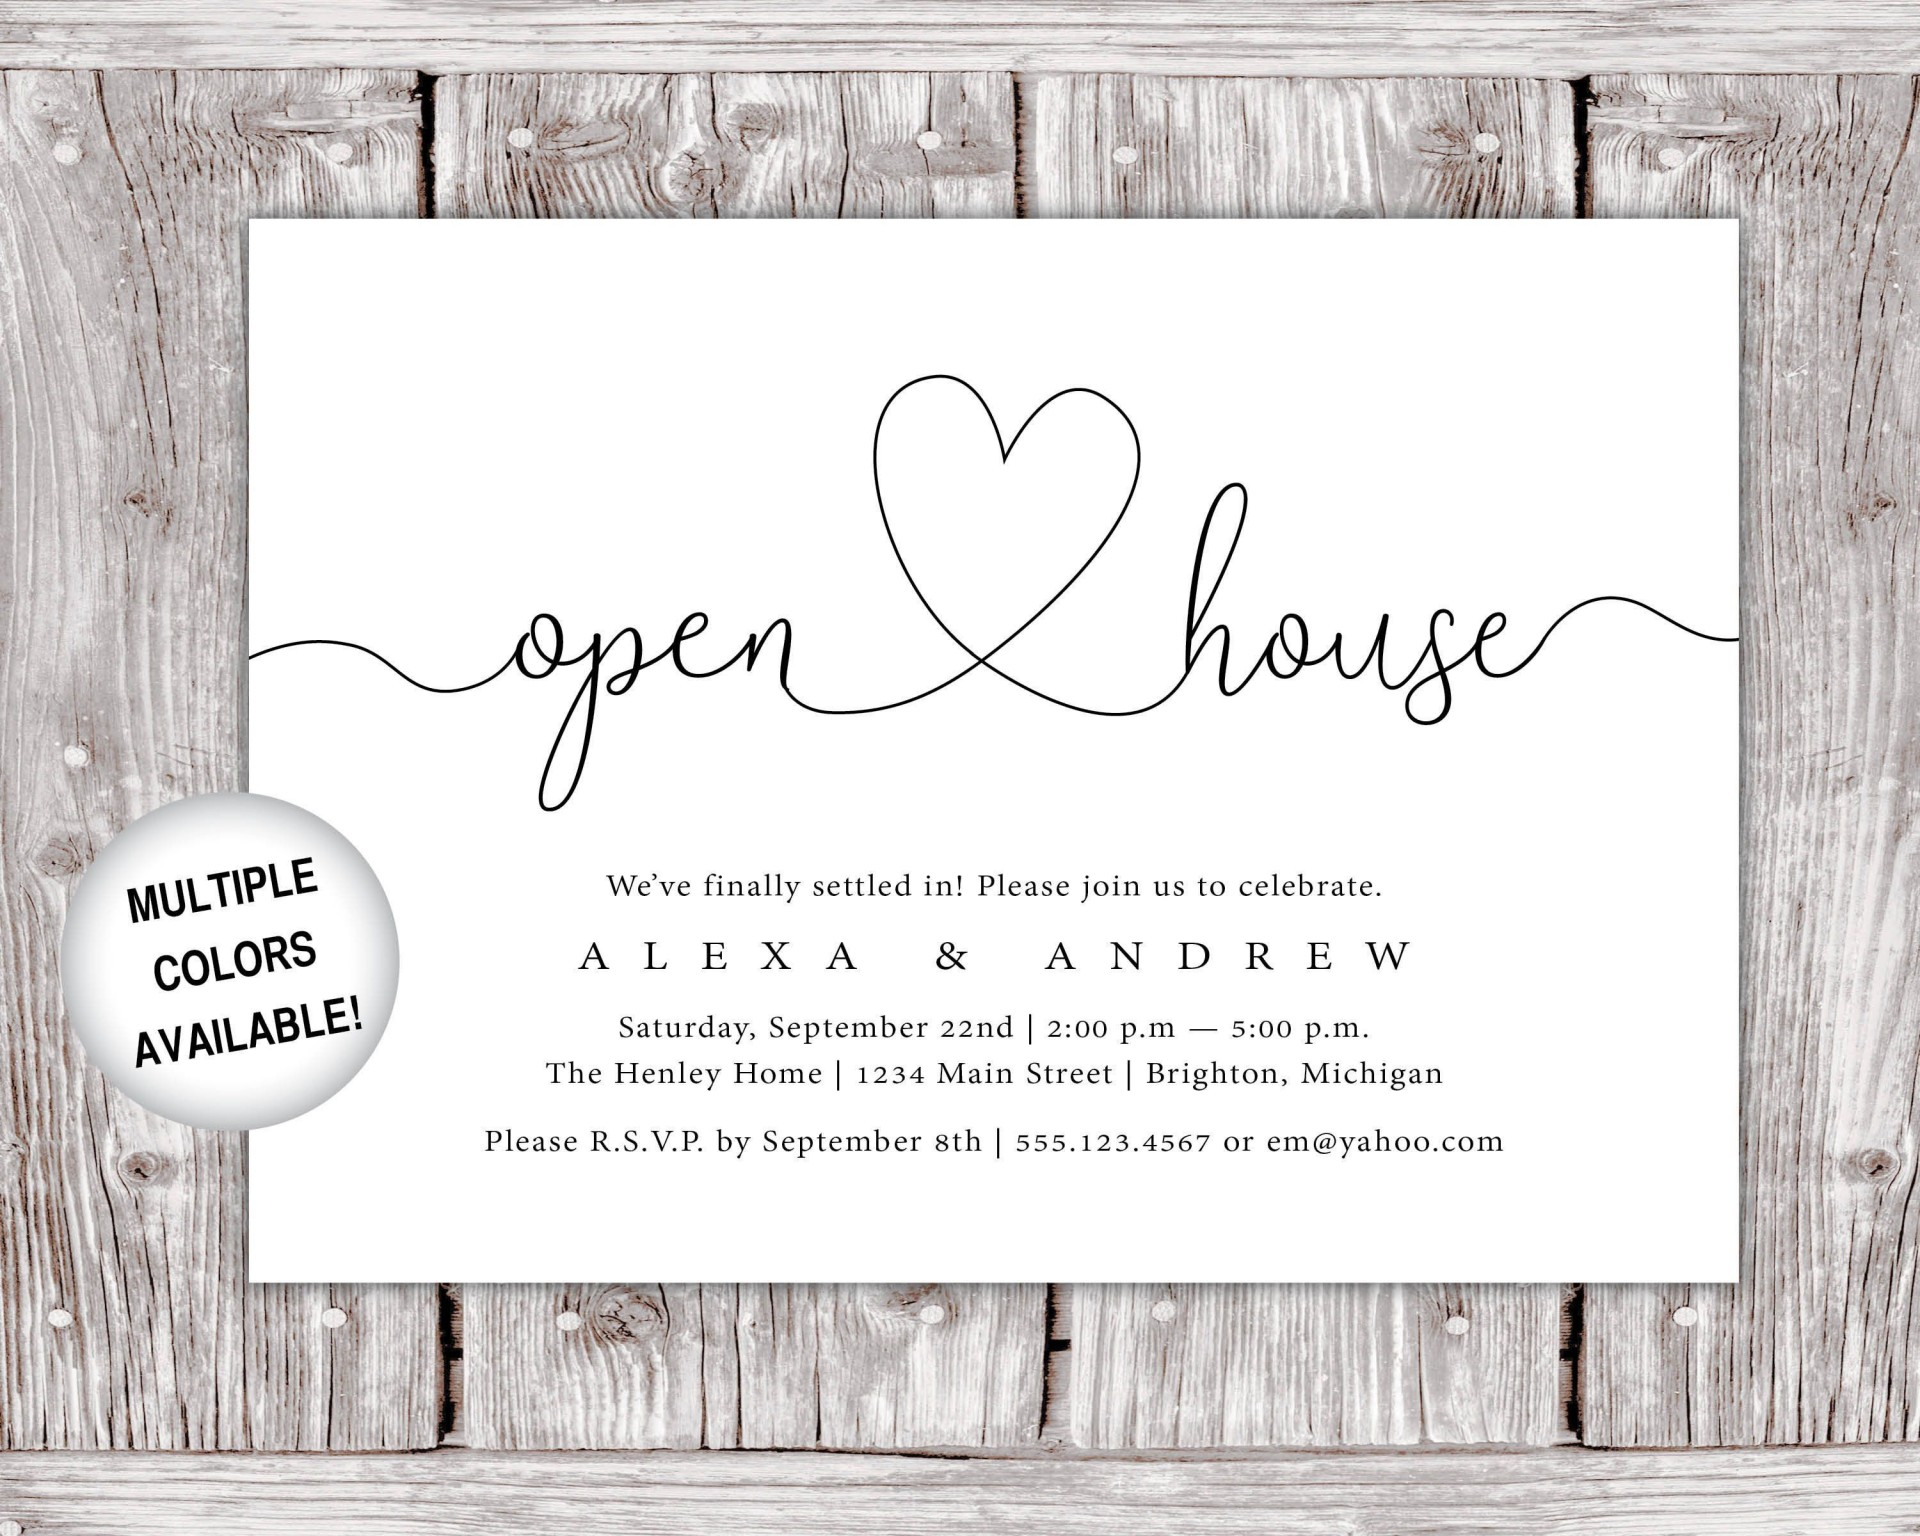 009 Breathtaking Open House Invite Template Inspiration  Templates Party Invitation1920